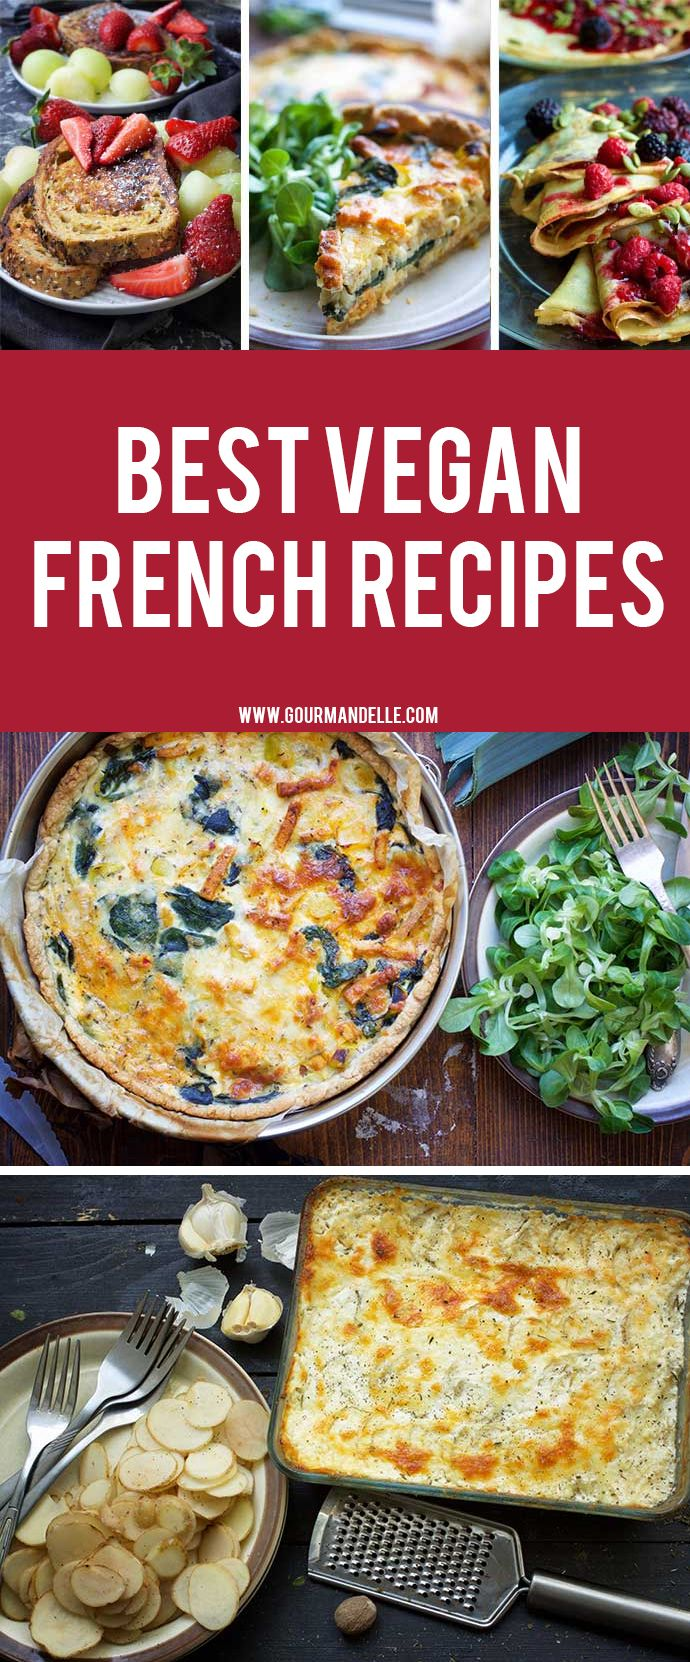 French Cuisine Complete Guide For Foodies Vegan French Recipes French Cuisine French Cuisine Recipes